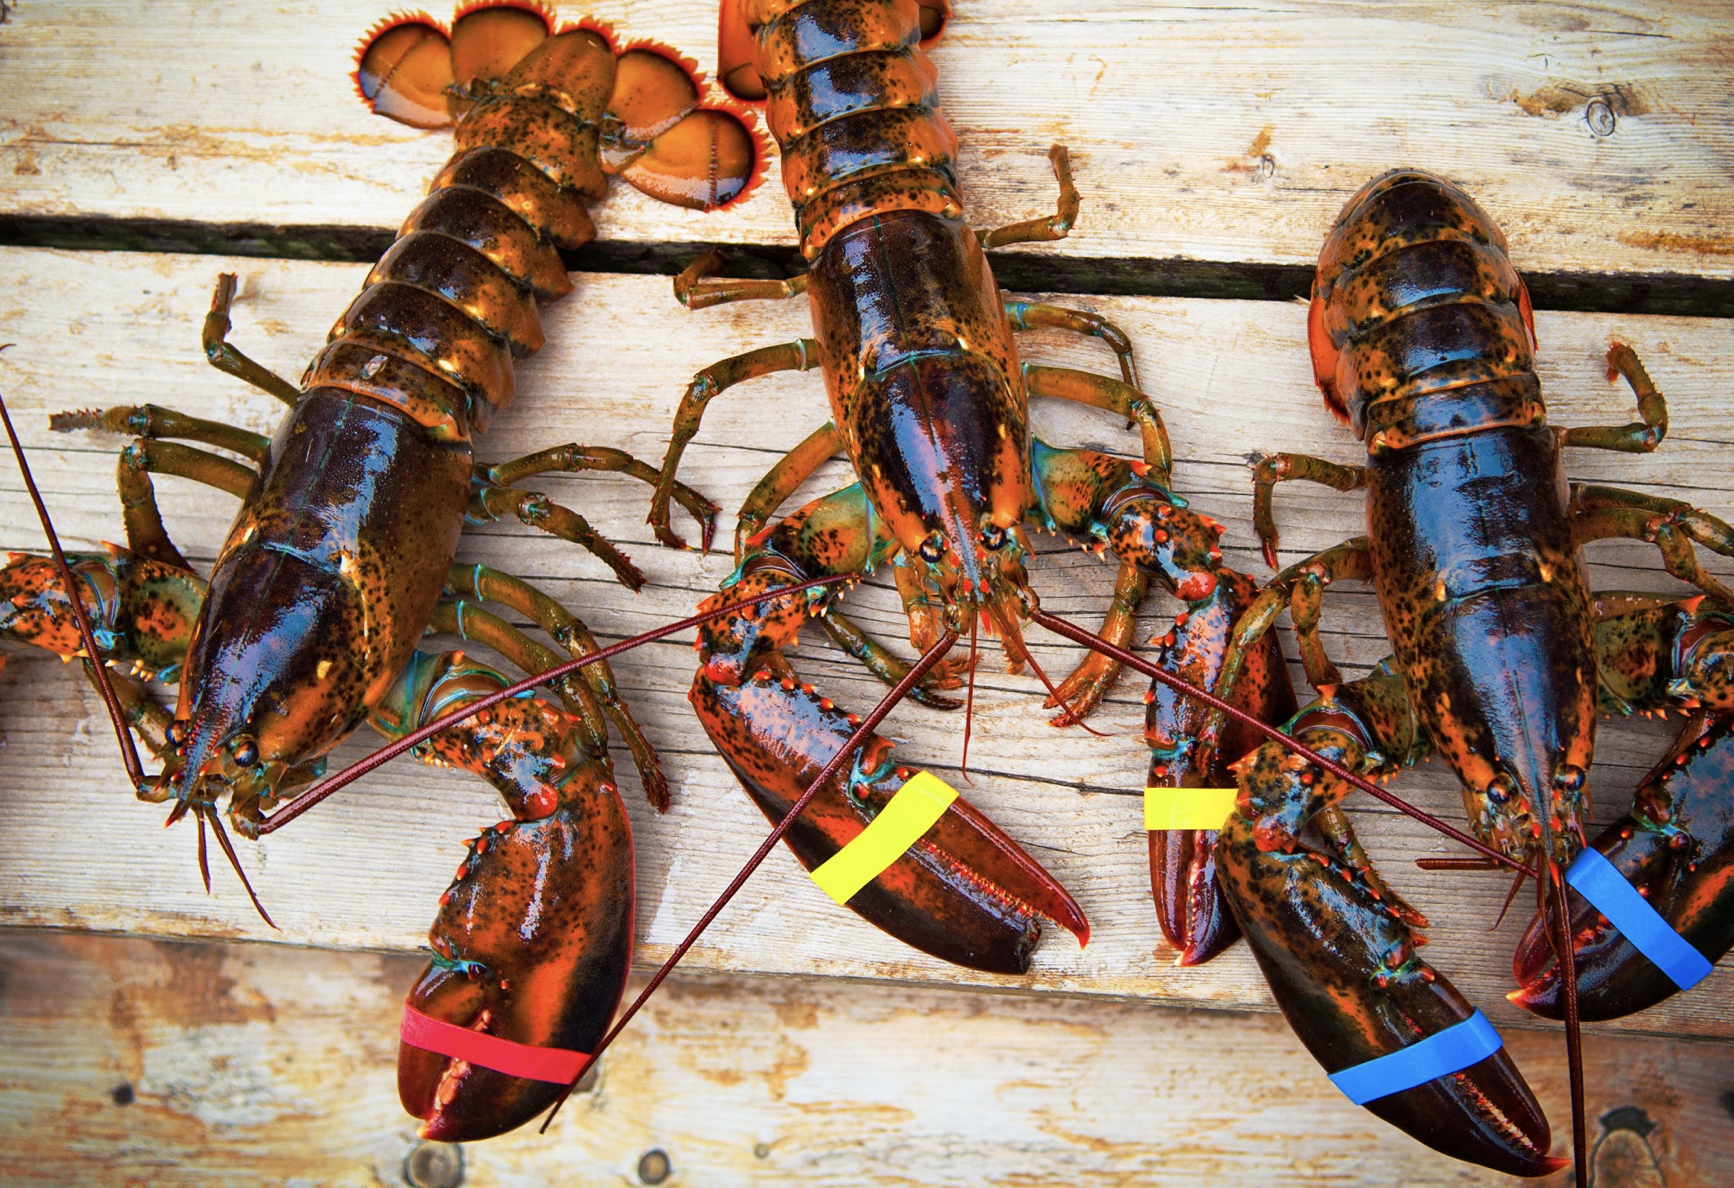 Lobster on a wooden table